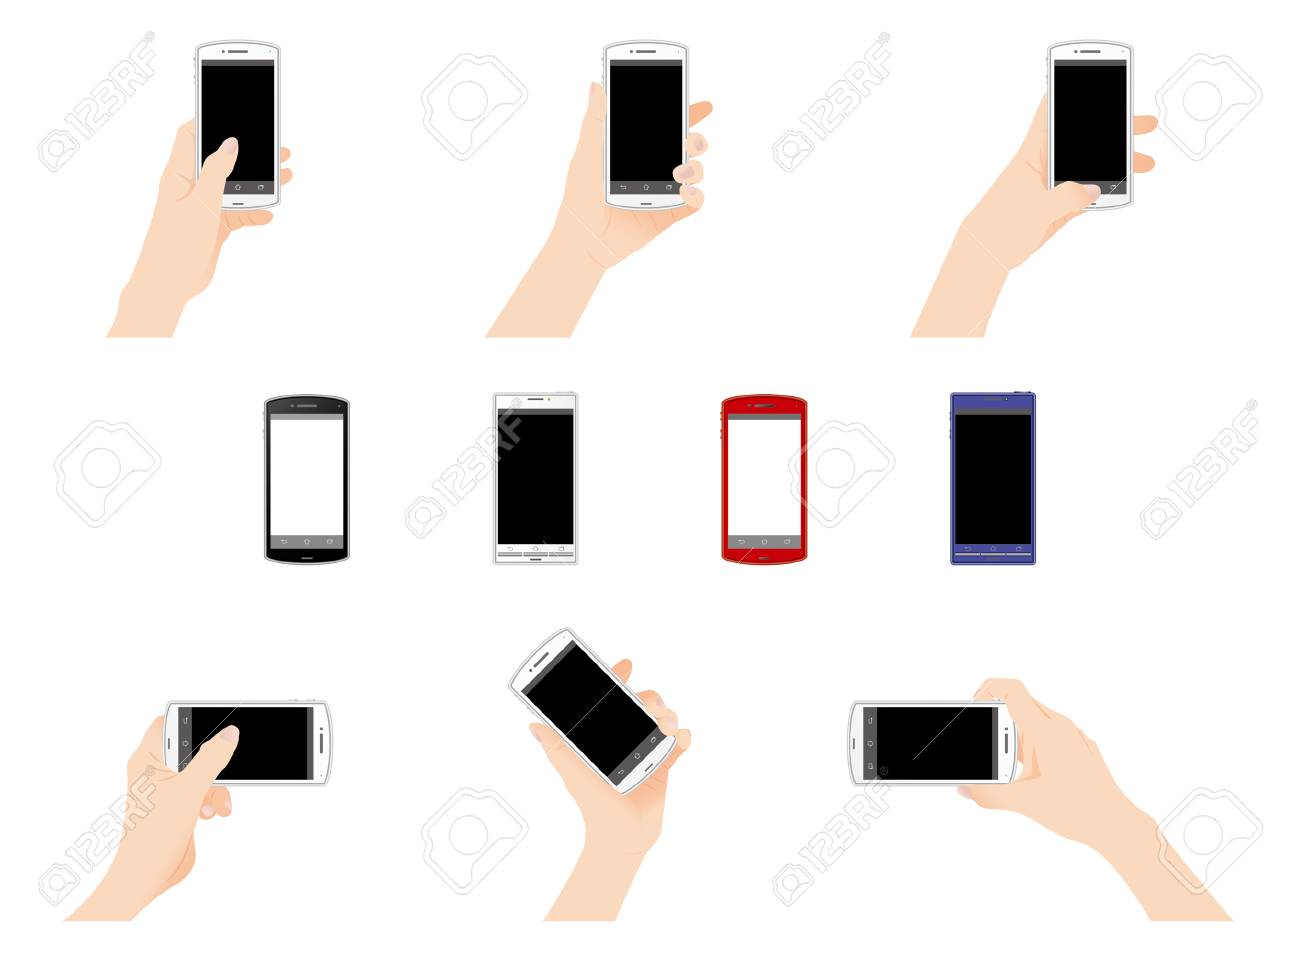 Using the mobile phone - 23068868